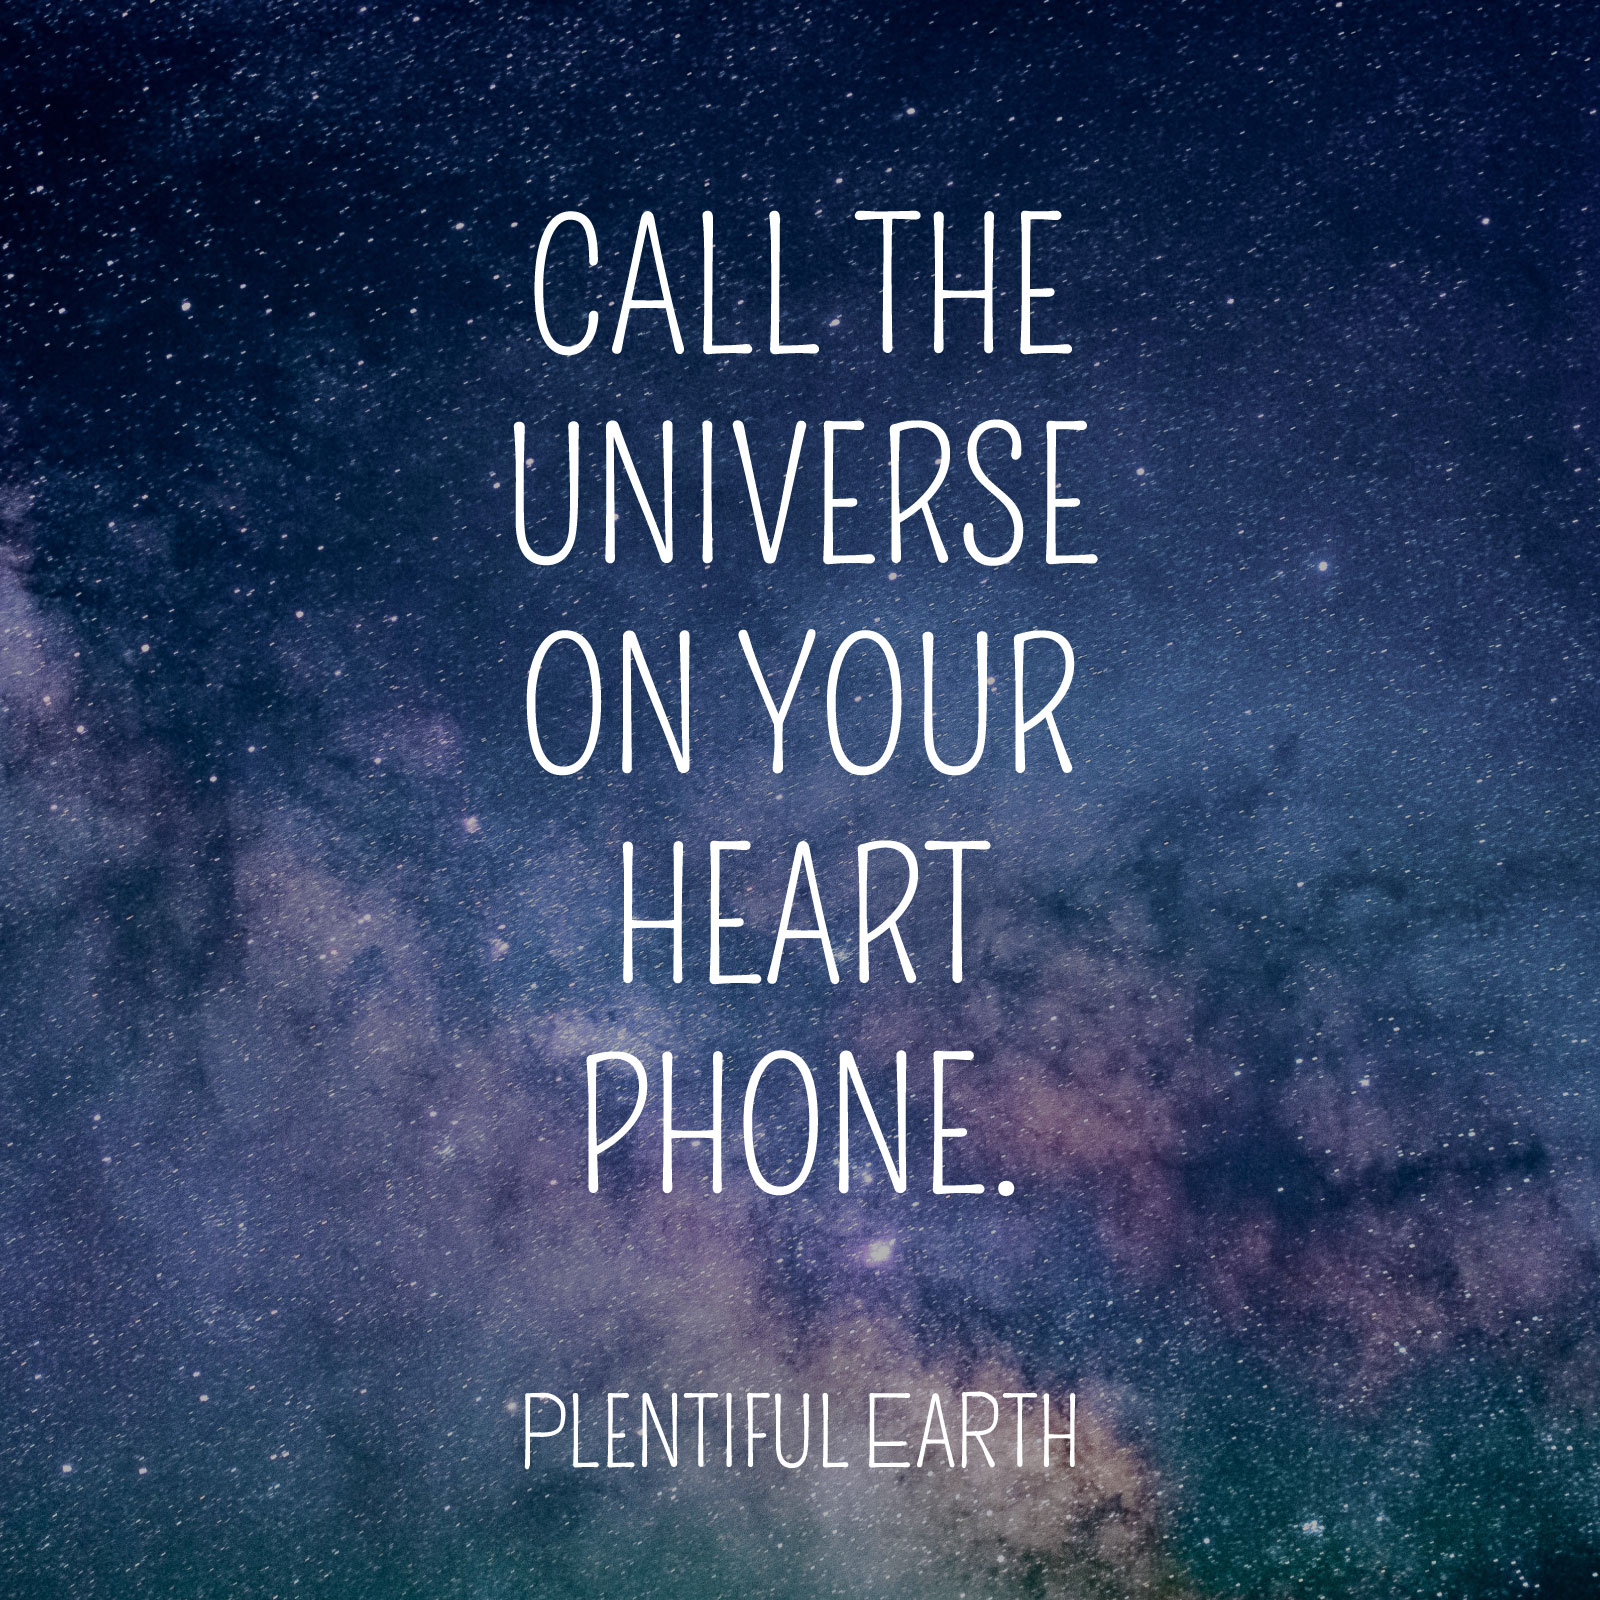 Call The Universe On Your Heart Phone Quote Plentiful Earth